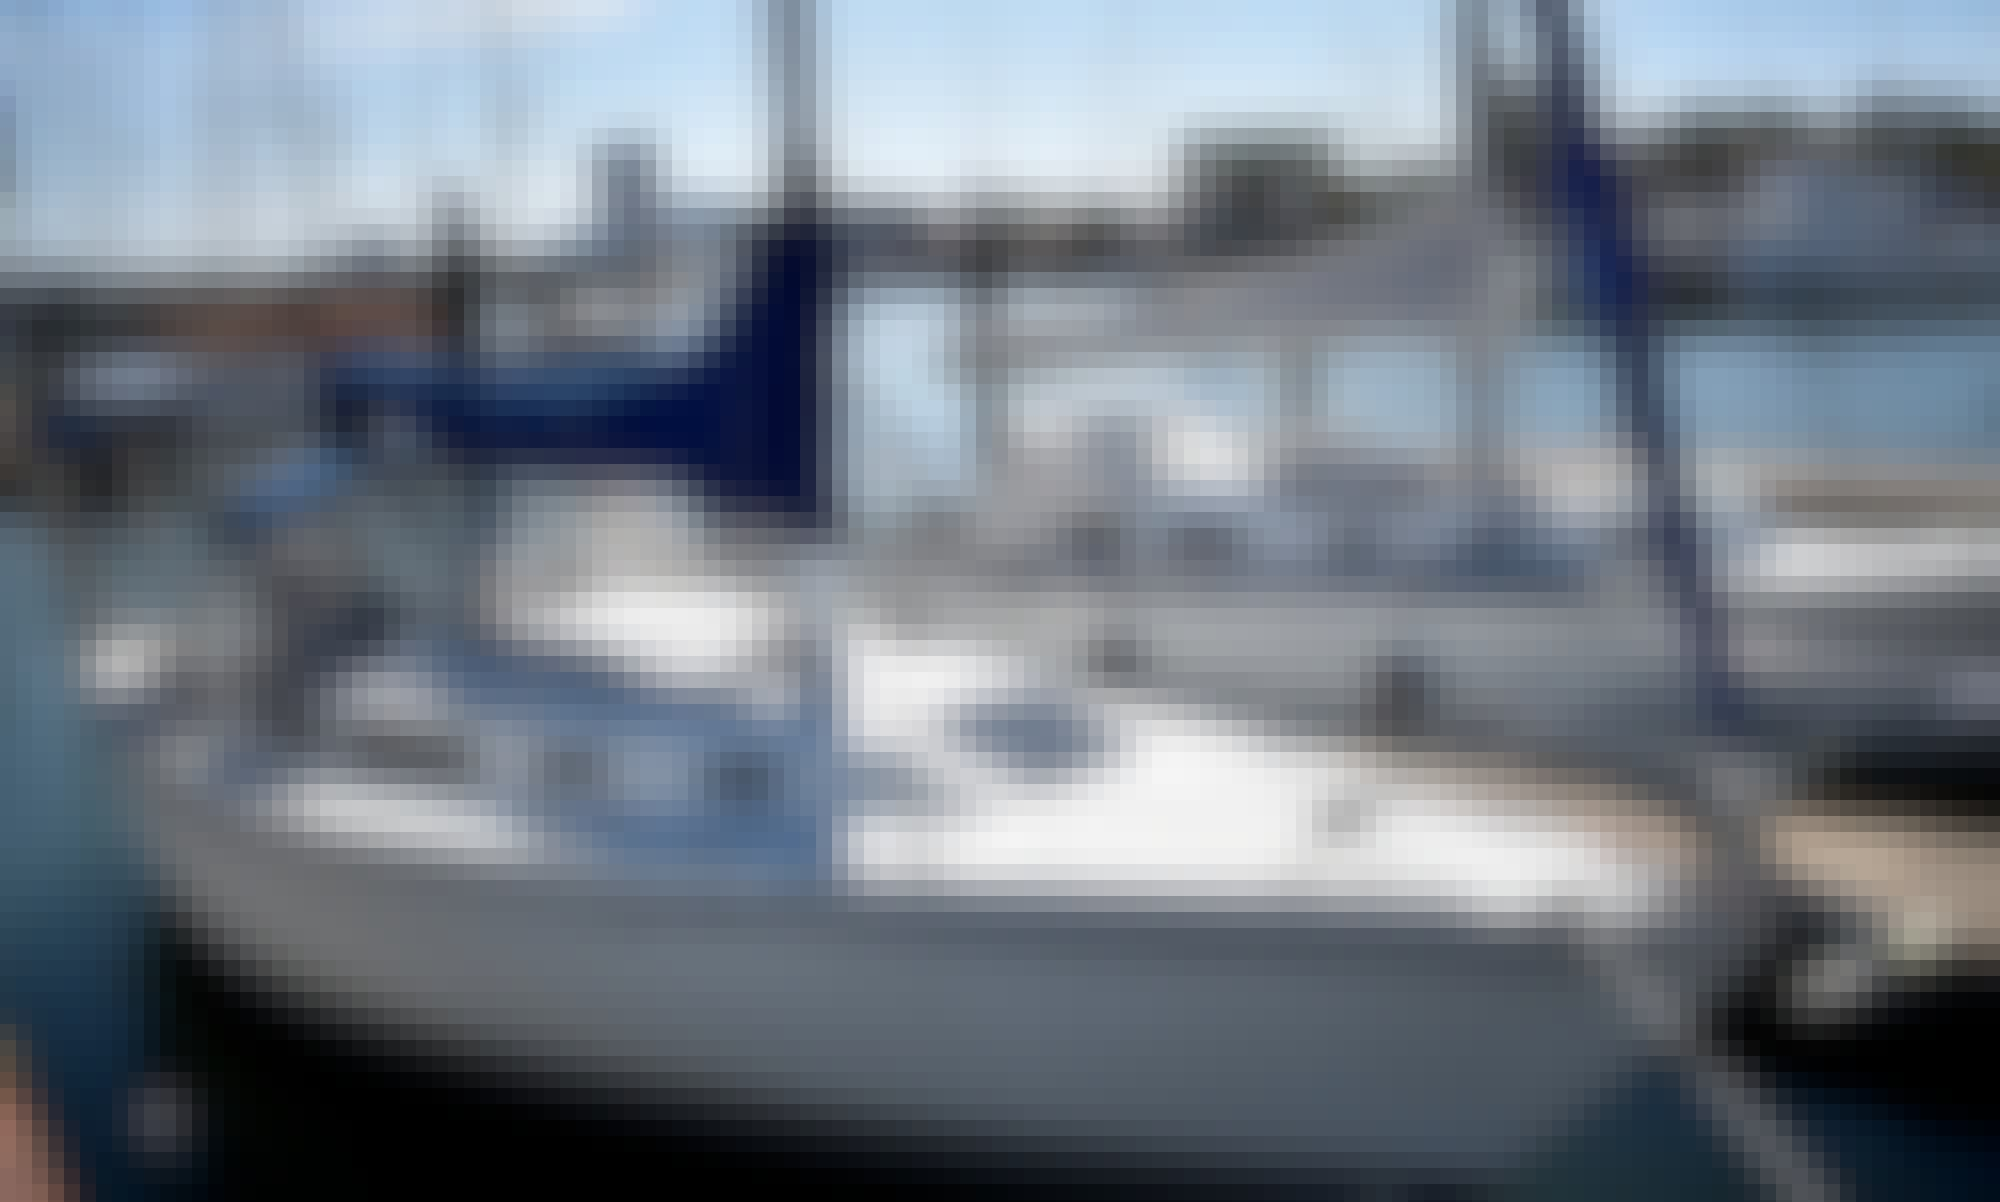 30' Luxury Sailing Boat! A Real Sailing Experience in Mazatlán